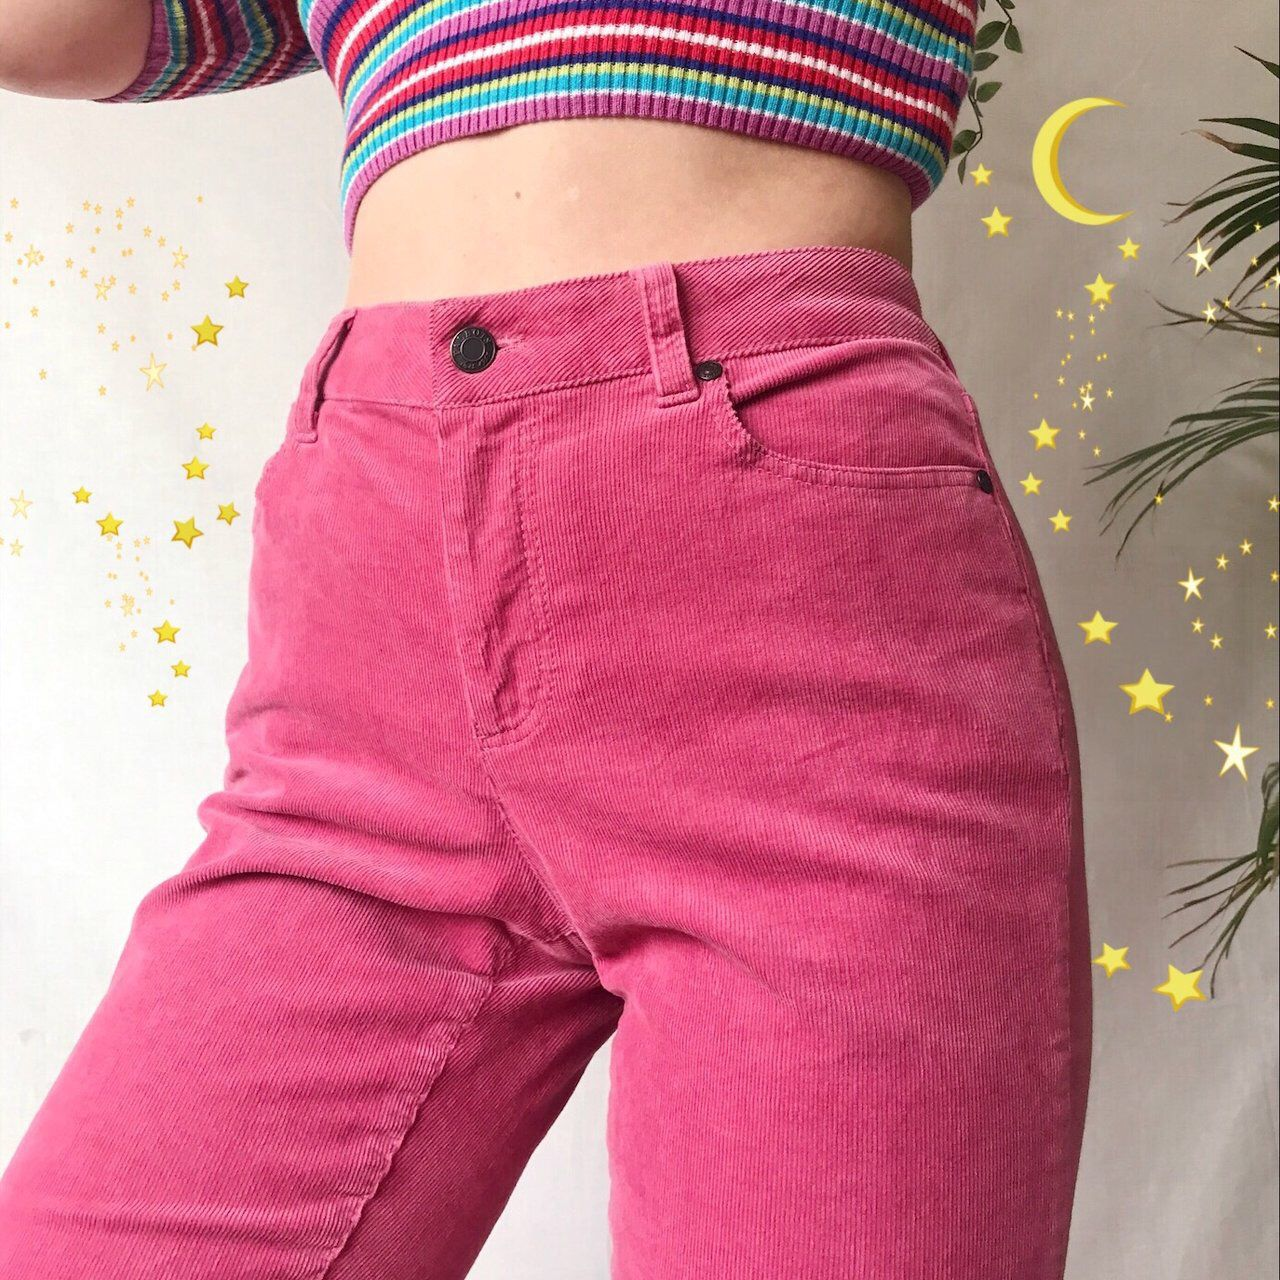 ad1a09bf6db Listed on Depop by libertymai in 2019 | depop | Depop, Pink ...